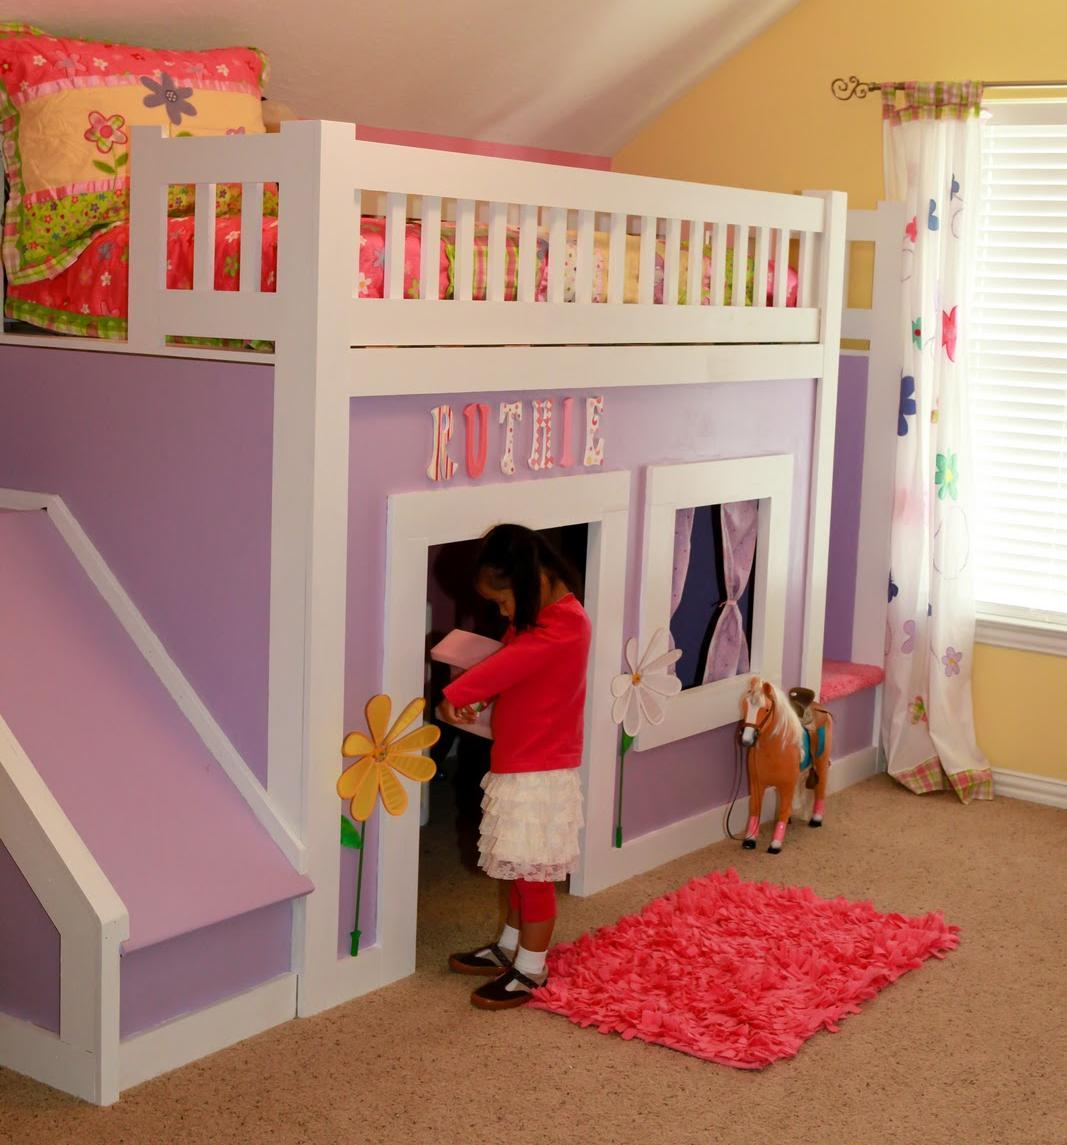 Play Bunk Beds For Large Families From Woodland likewise Treetop Castle Tree House besides Princess Bed Stairs And Slide in addition La Cabane De Jardin Pour Enfant Est Une Idee Superbe Pour Votre Jardin besides 924464. on princess cottage playhouse plans